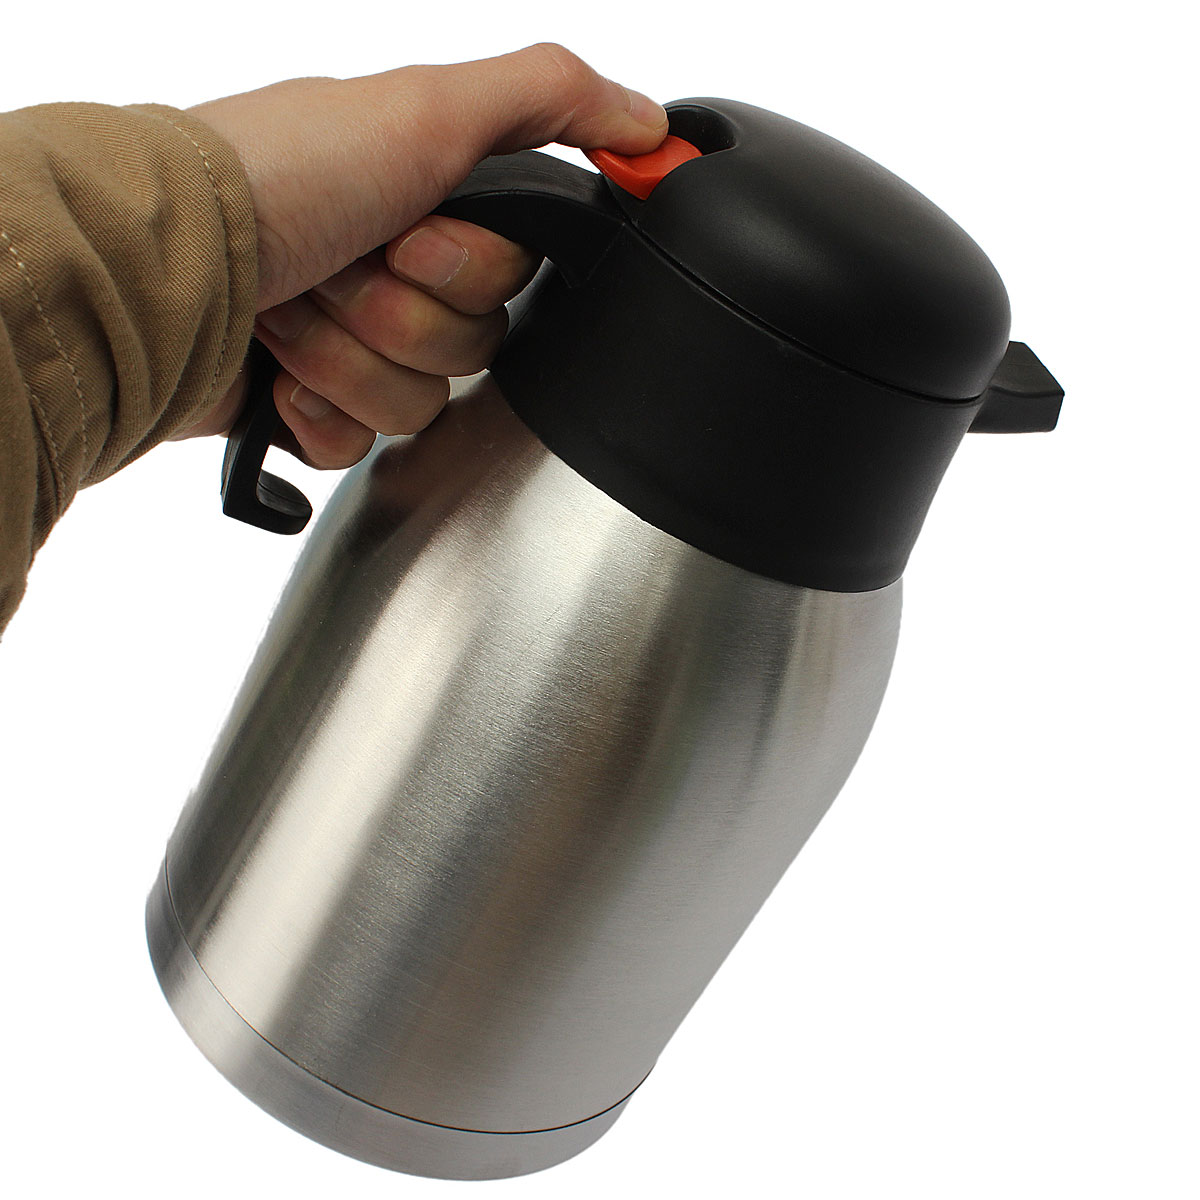 New Arrival 1 5L High capacity Home Stainless Steel Vacuum Insulated Water Bottle Heat Water Pot